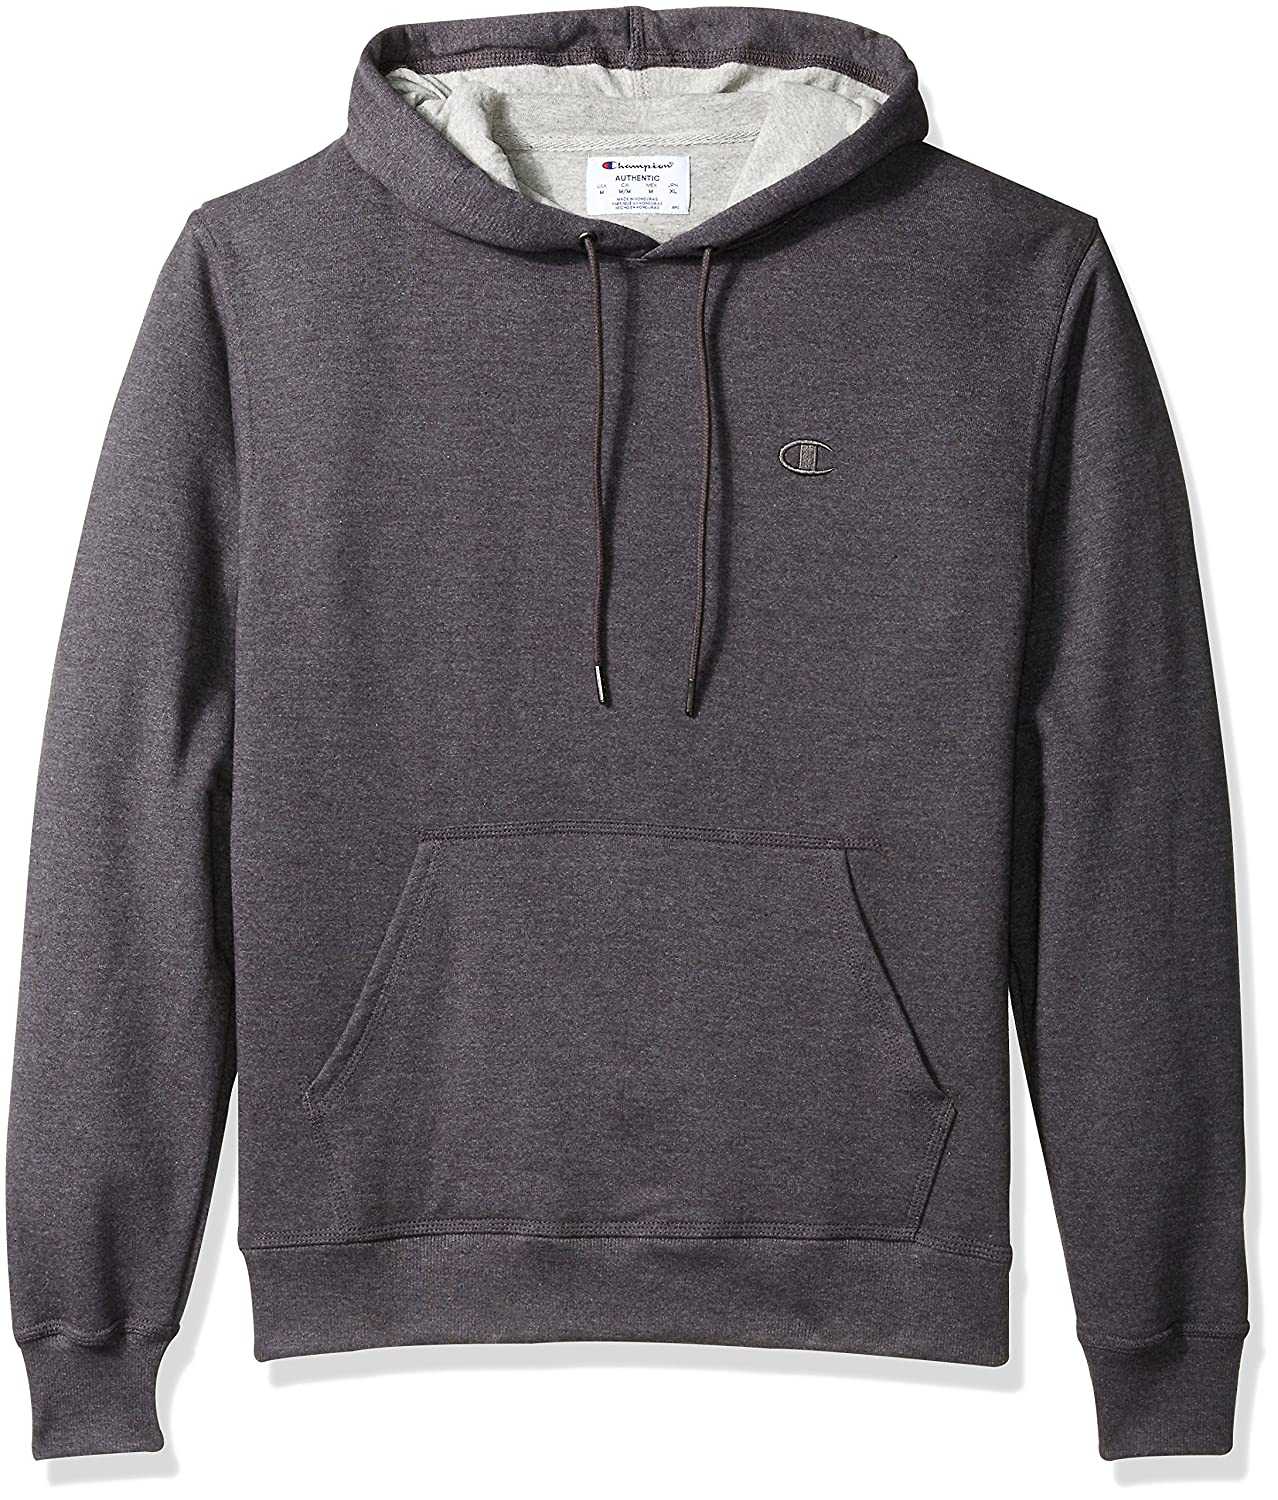 Champion Men's Powerblend Fleece Pullover Hoodie at Amazon Men's ...